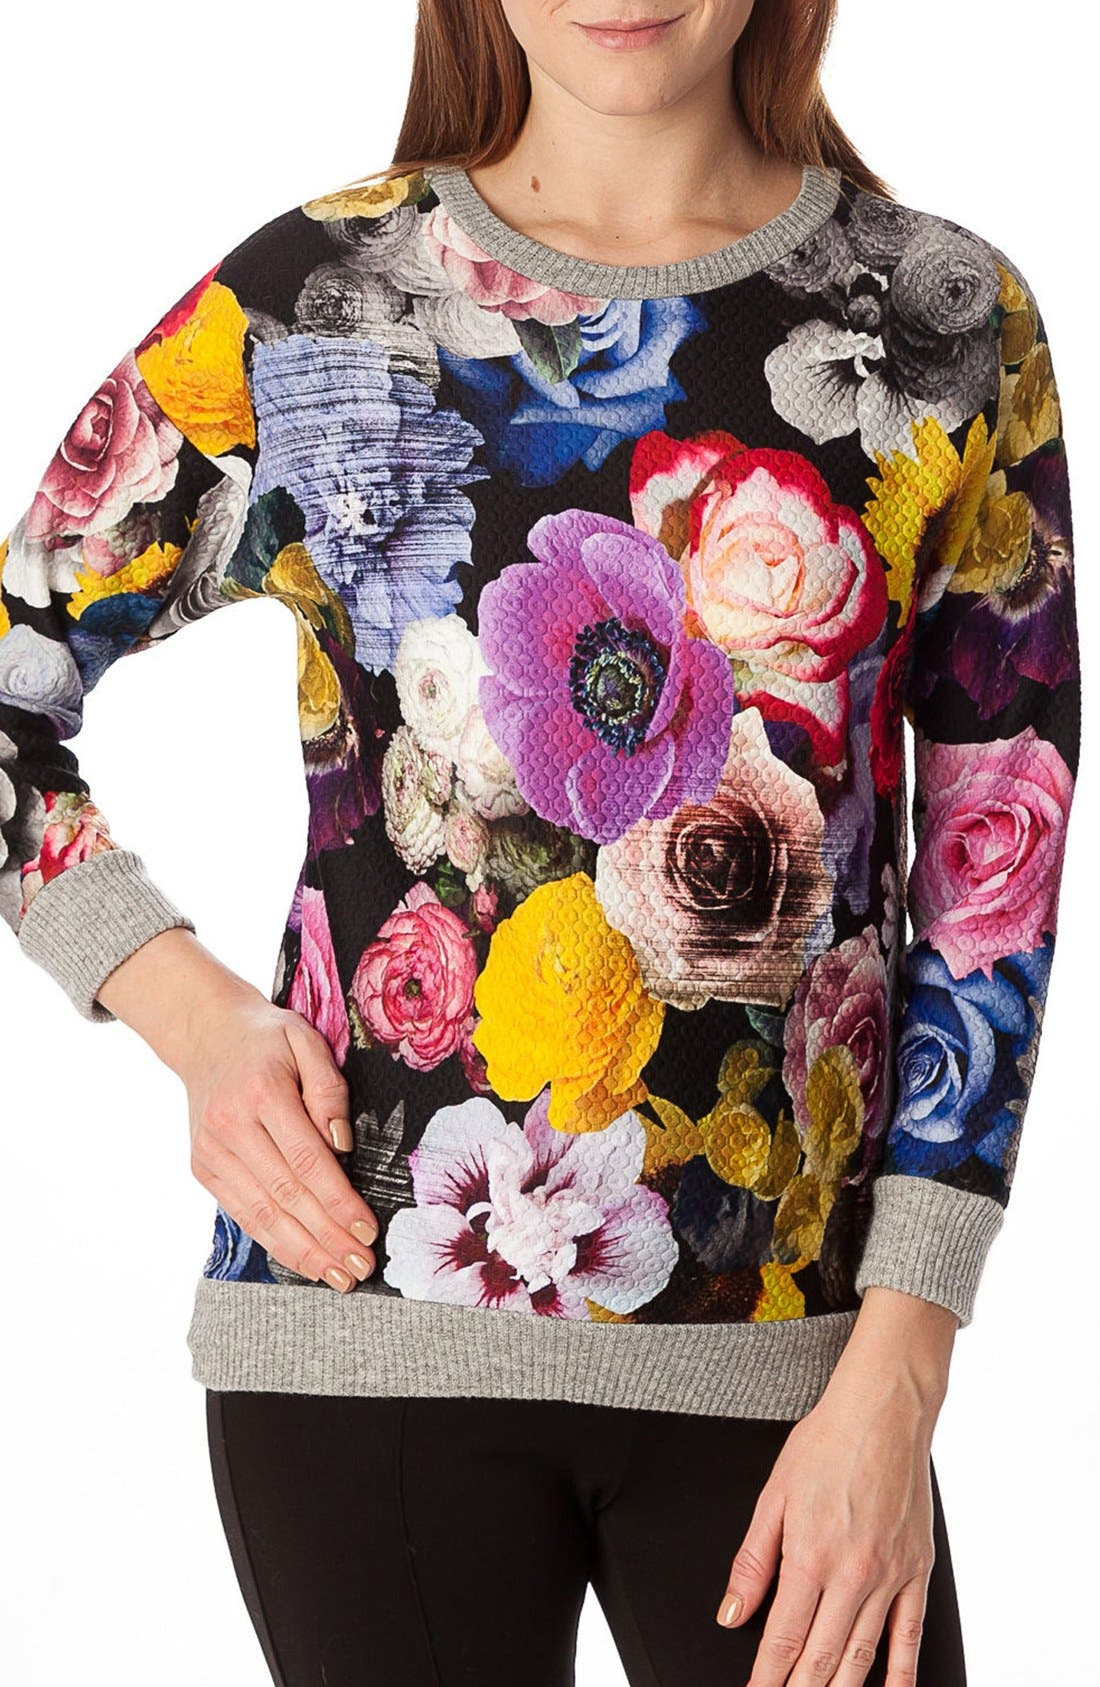 'Ocean' Floral Print Quilted Maternity Sweatshirt,                             Main thumbnail 1, color,                             Collage Of Flowers